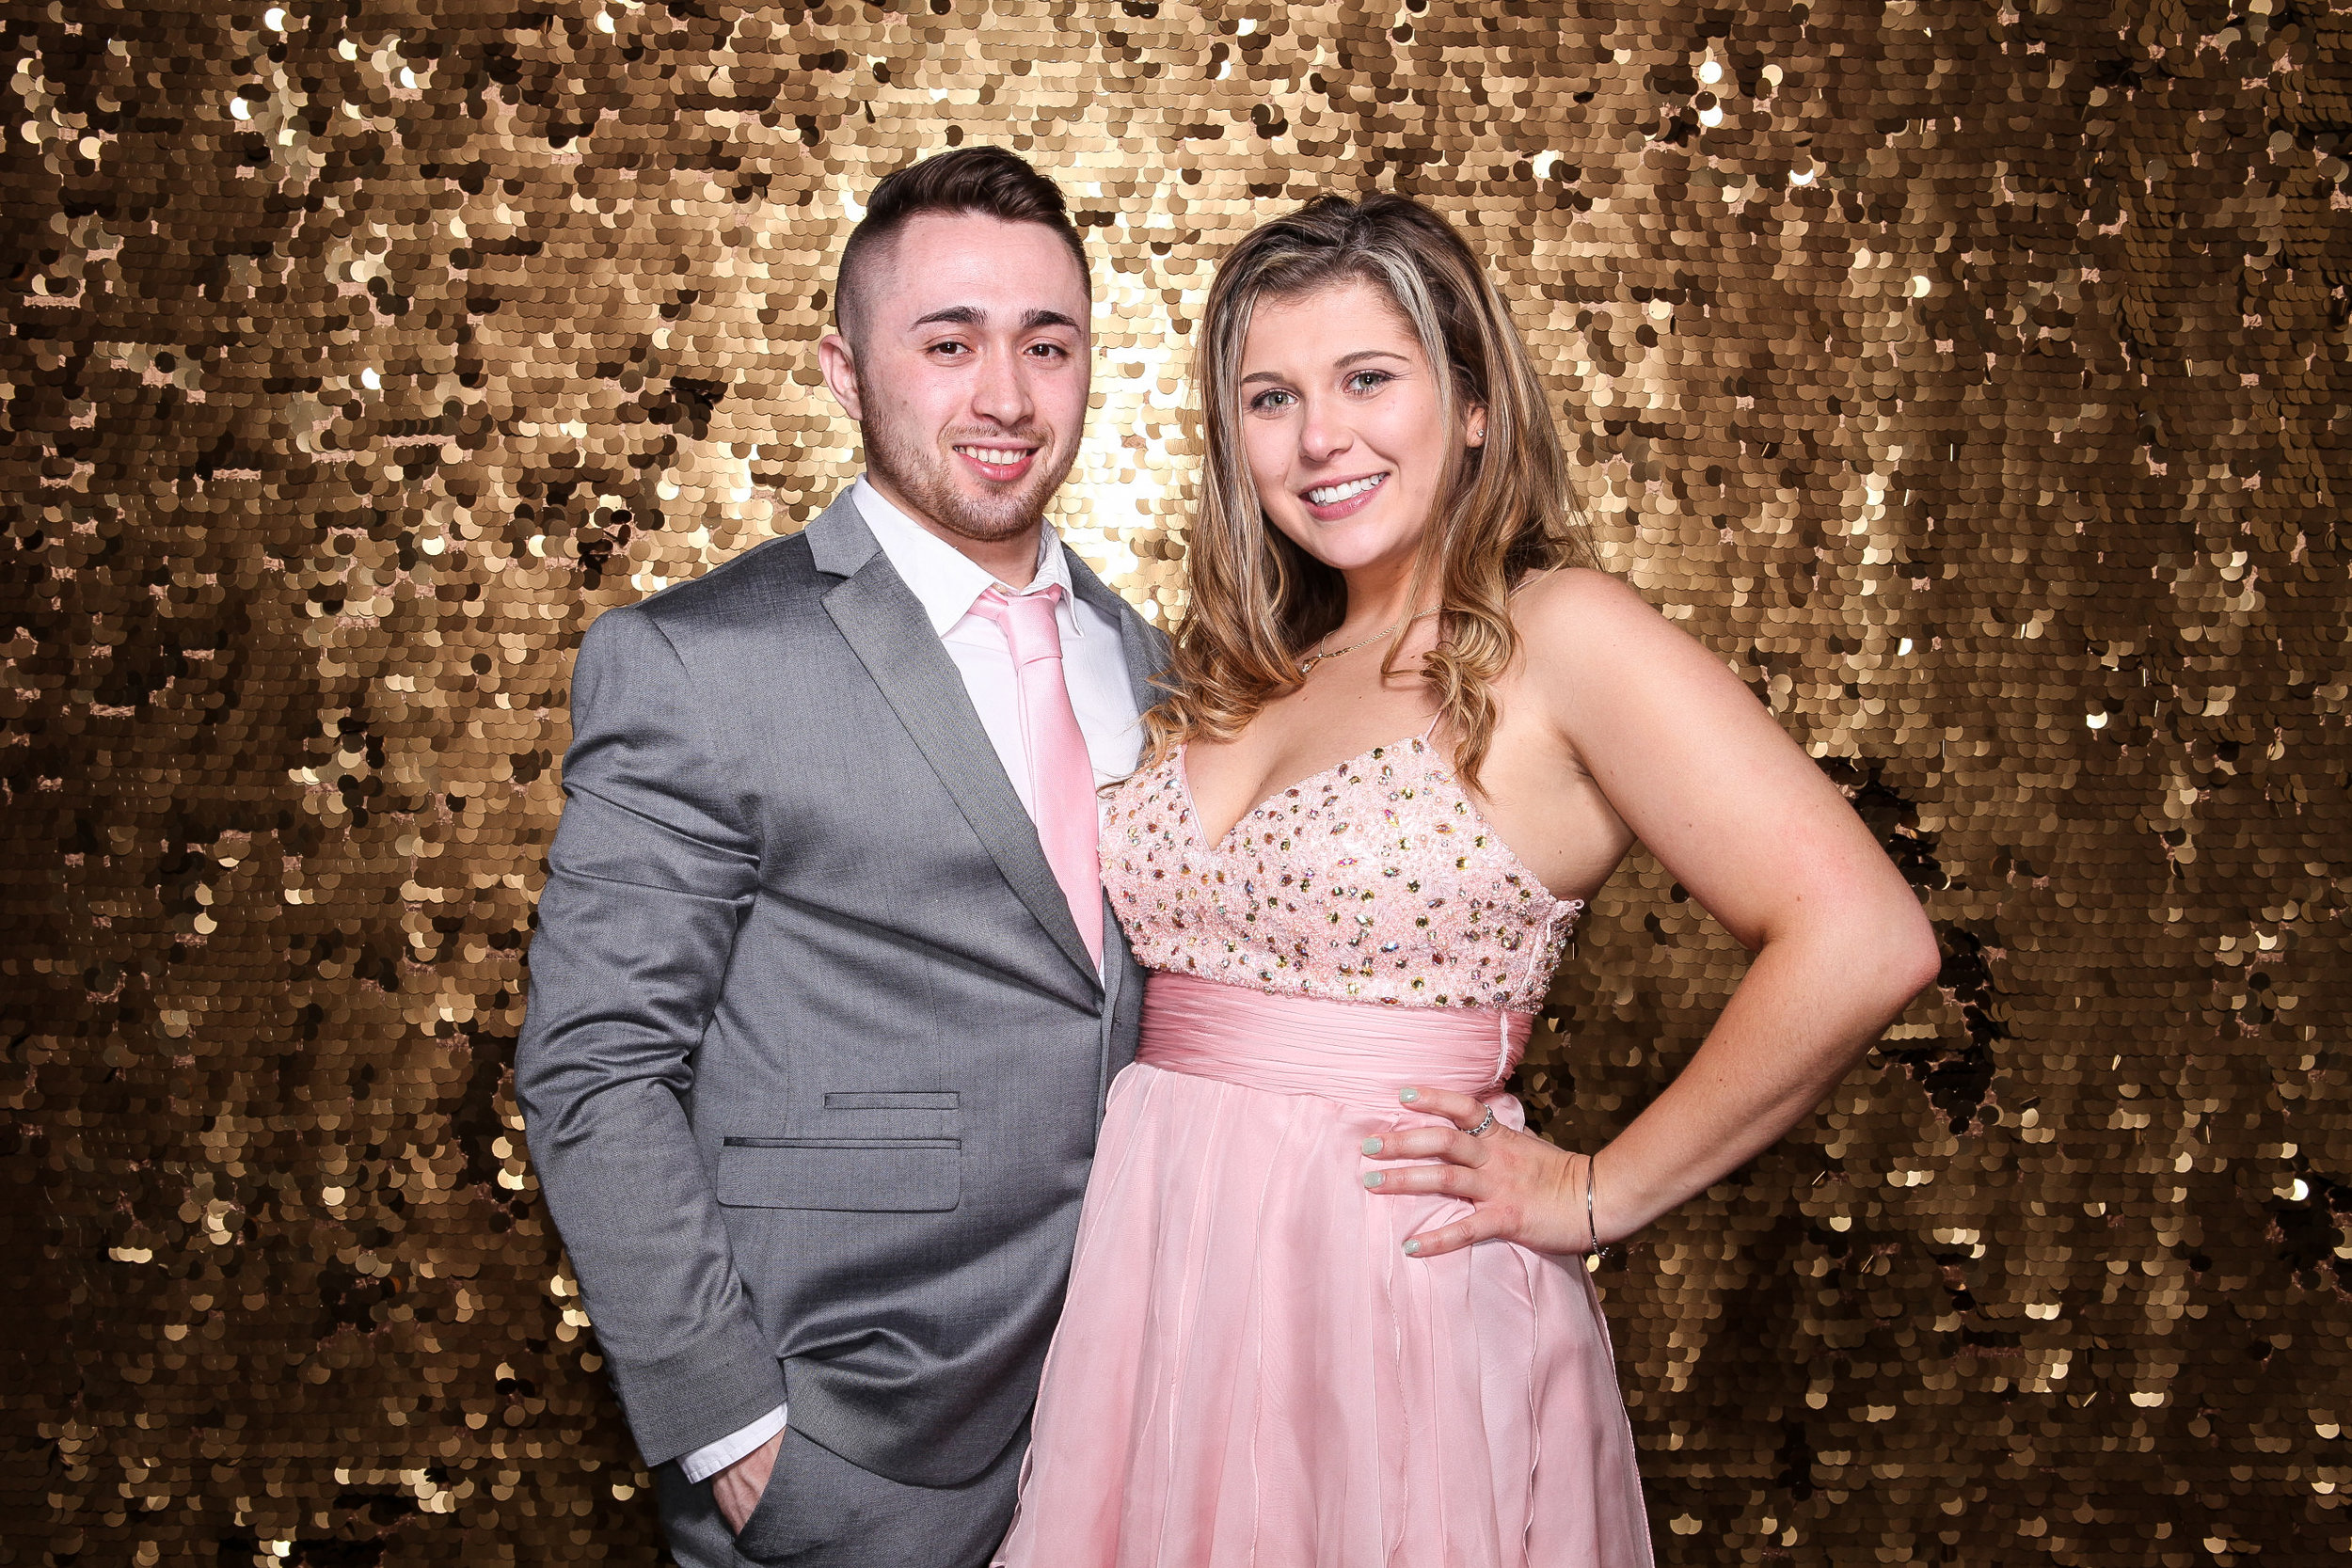 20190503_Adelphi_Senior_Formal-321.jpg